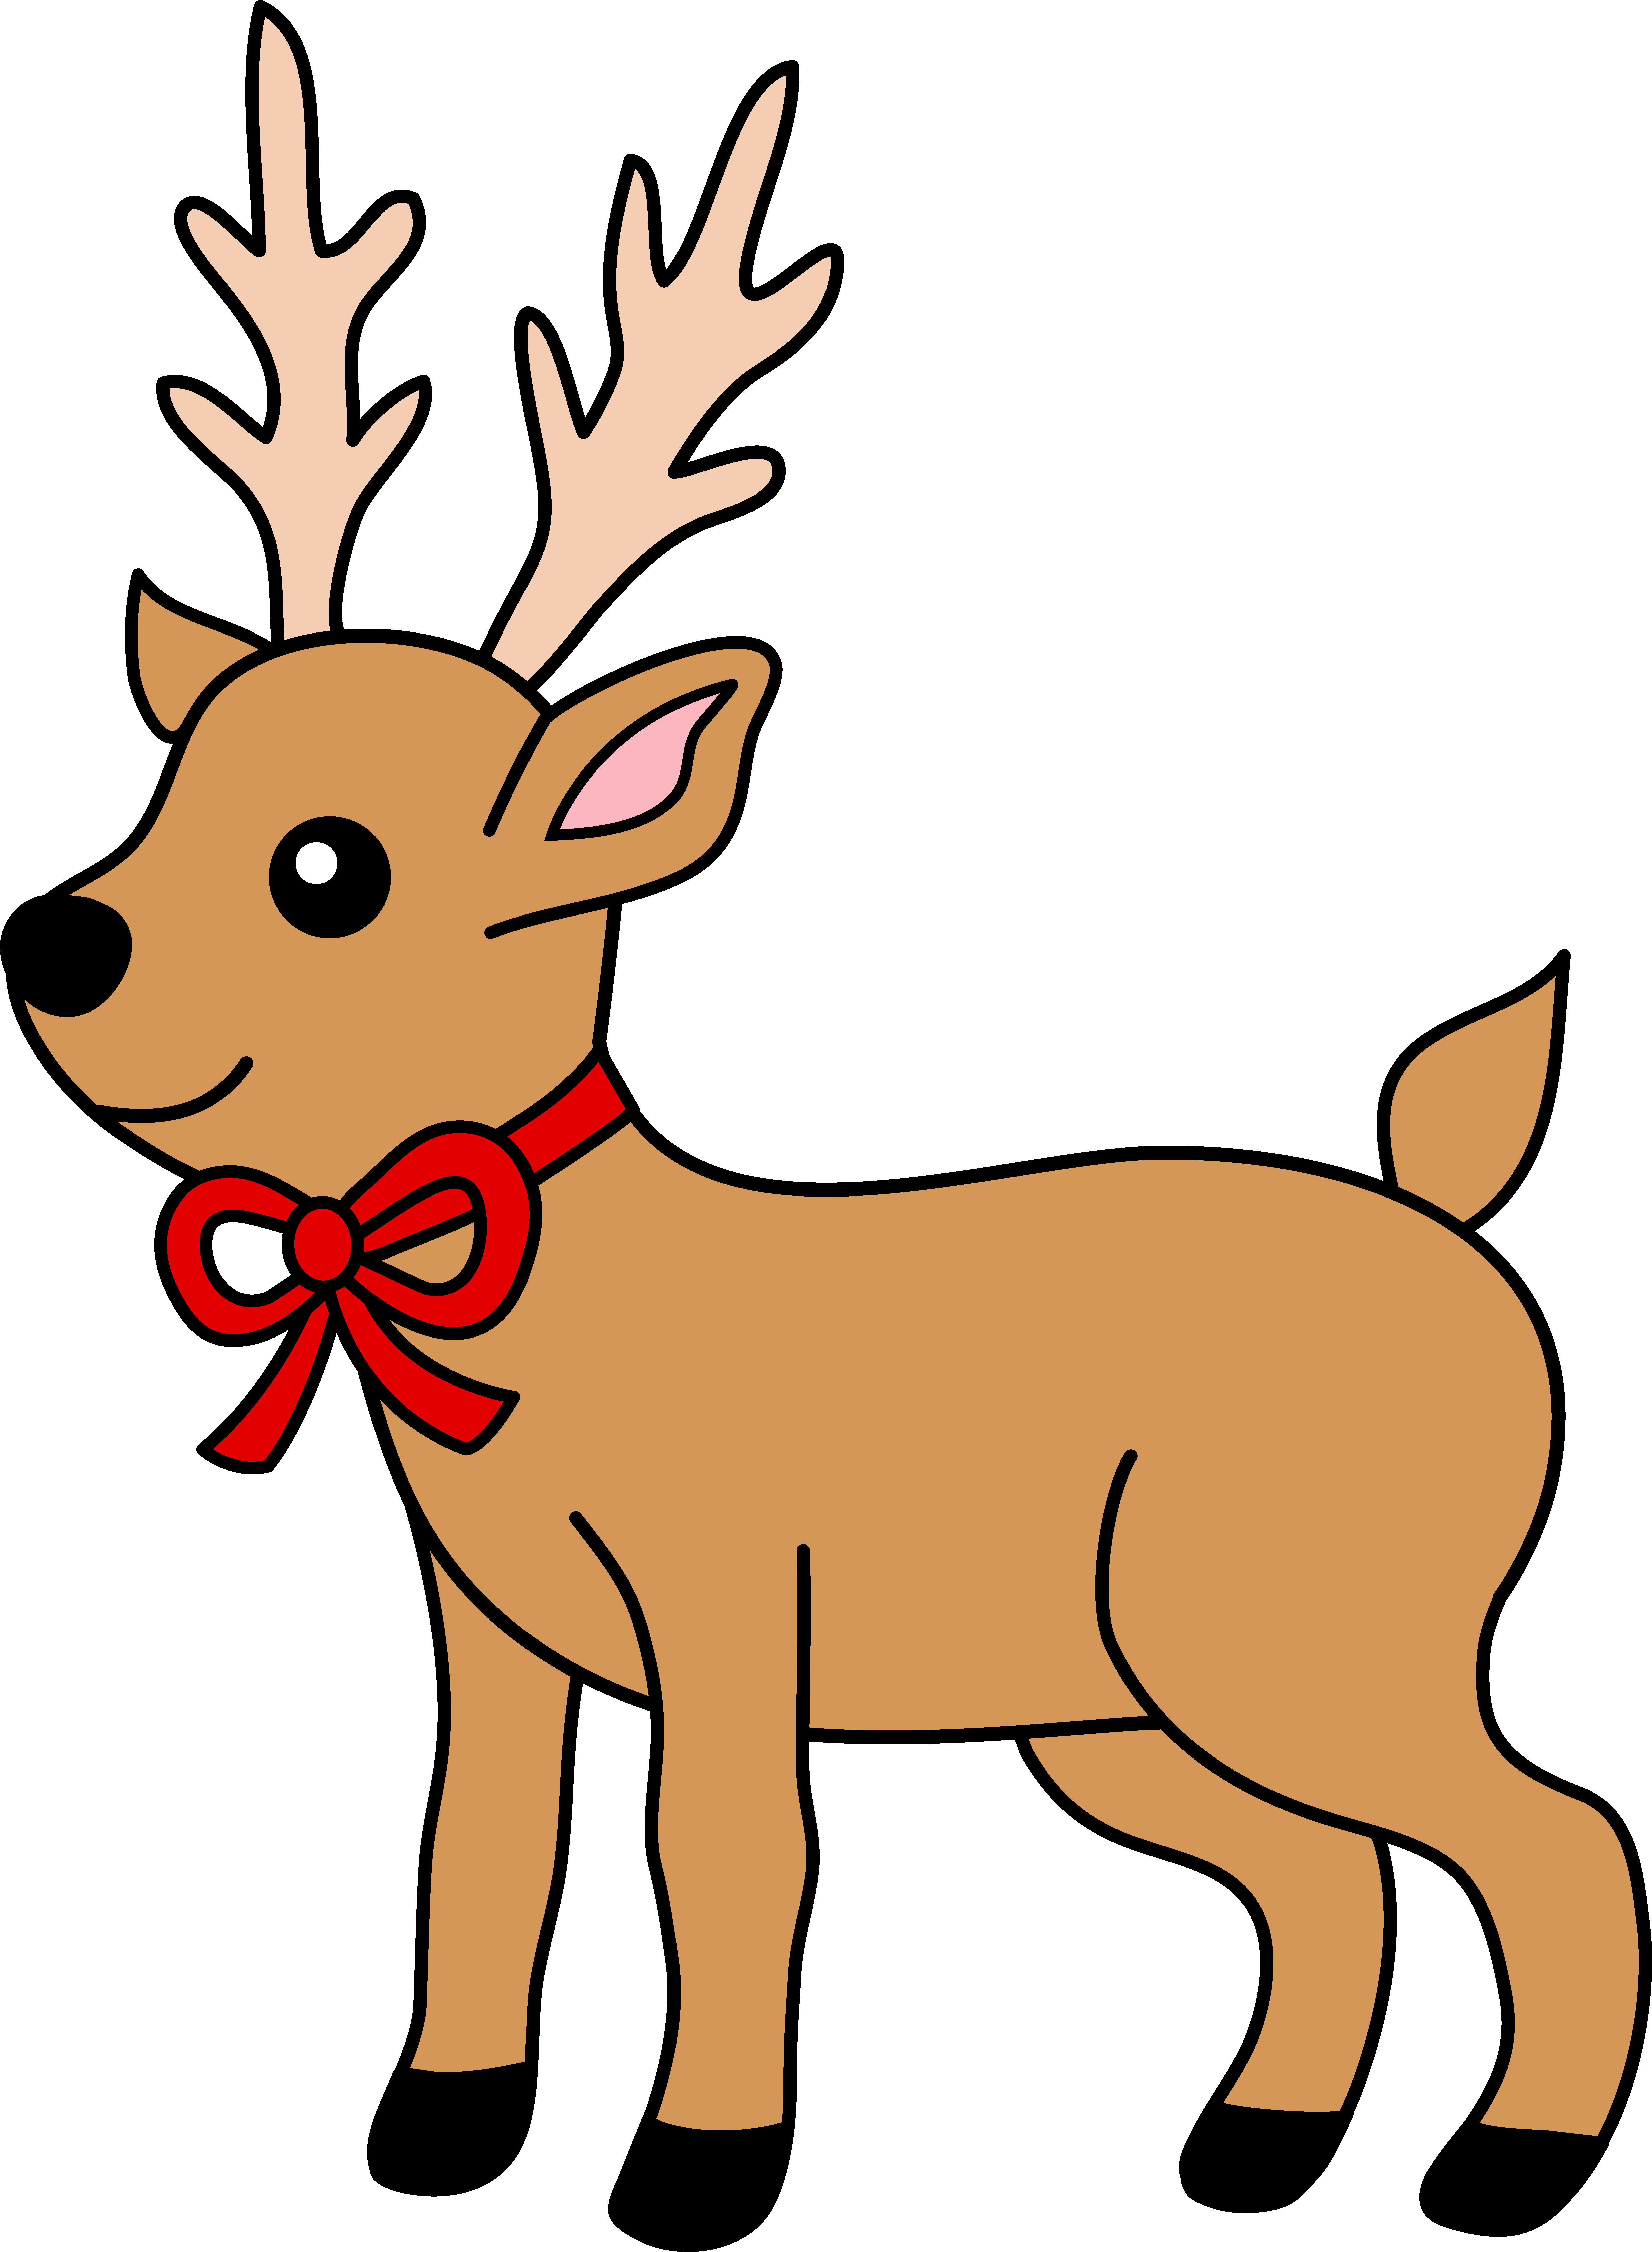 Reindeer sayings clipart free clip black and white library Free Christmas Reindeer Clipart, Download Free Clip Art, Free Clip ... clip black and white library